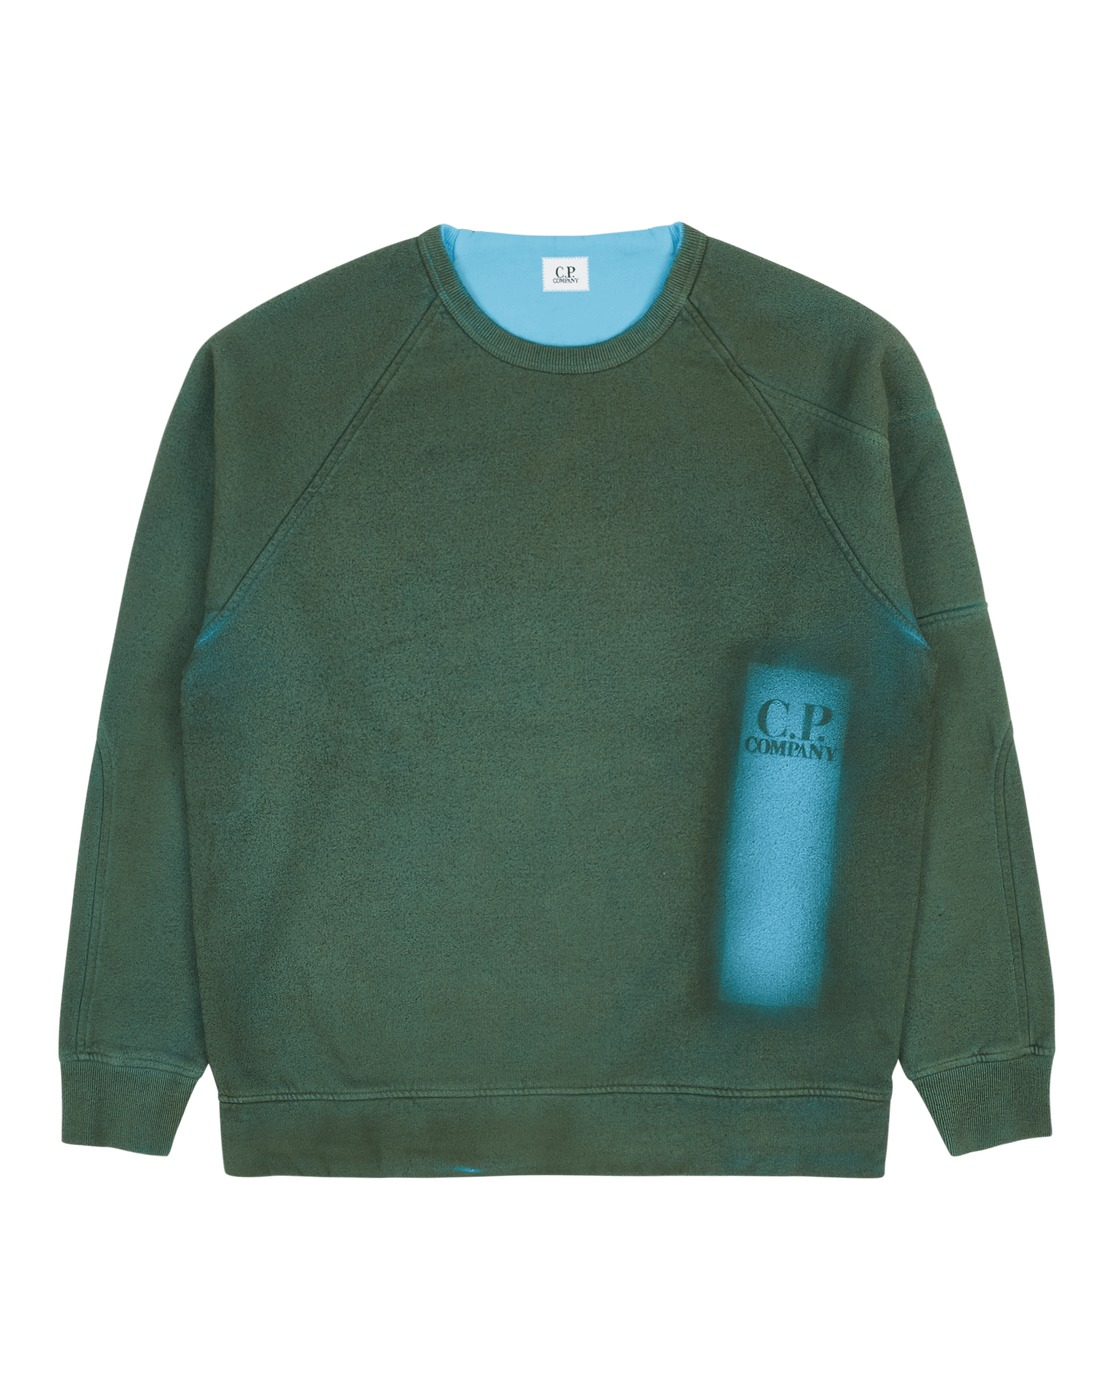 Photo: C.P. Company P.Ri.S.M. Crewneck Sweatshirt Var.01